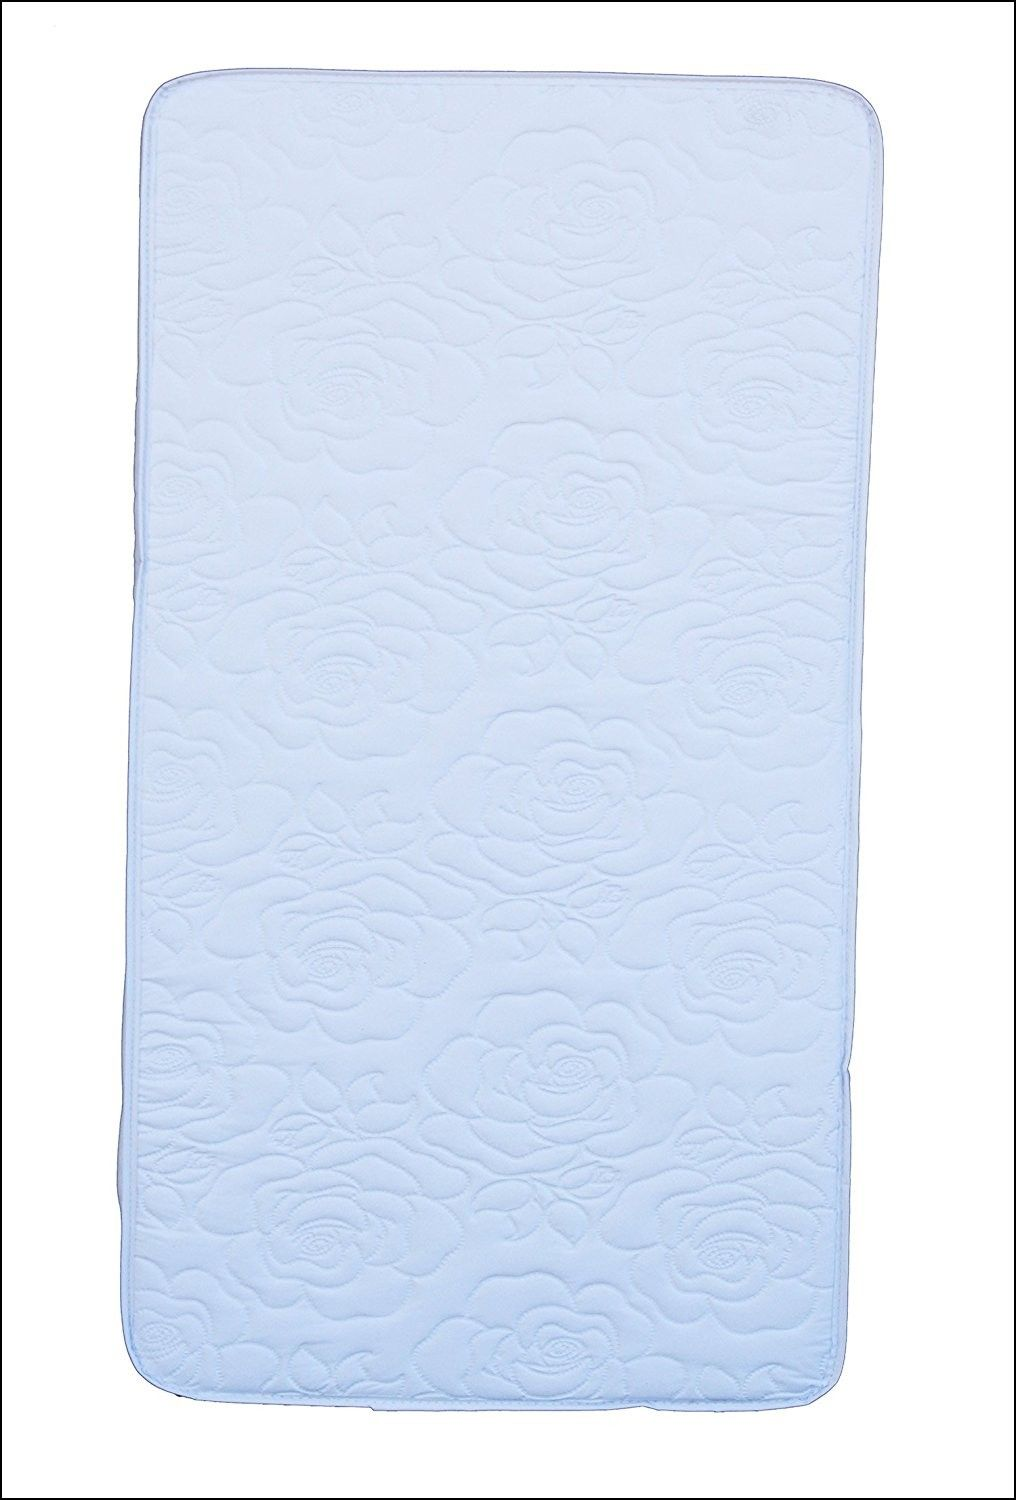 cradle mattress pad 18 x 36 mattress ideas pinterest mattress